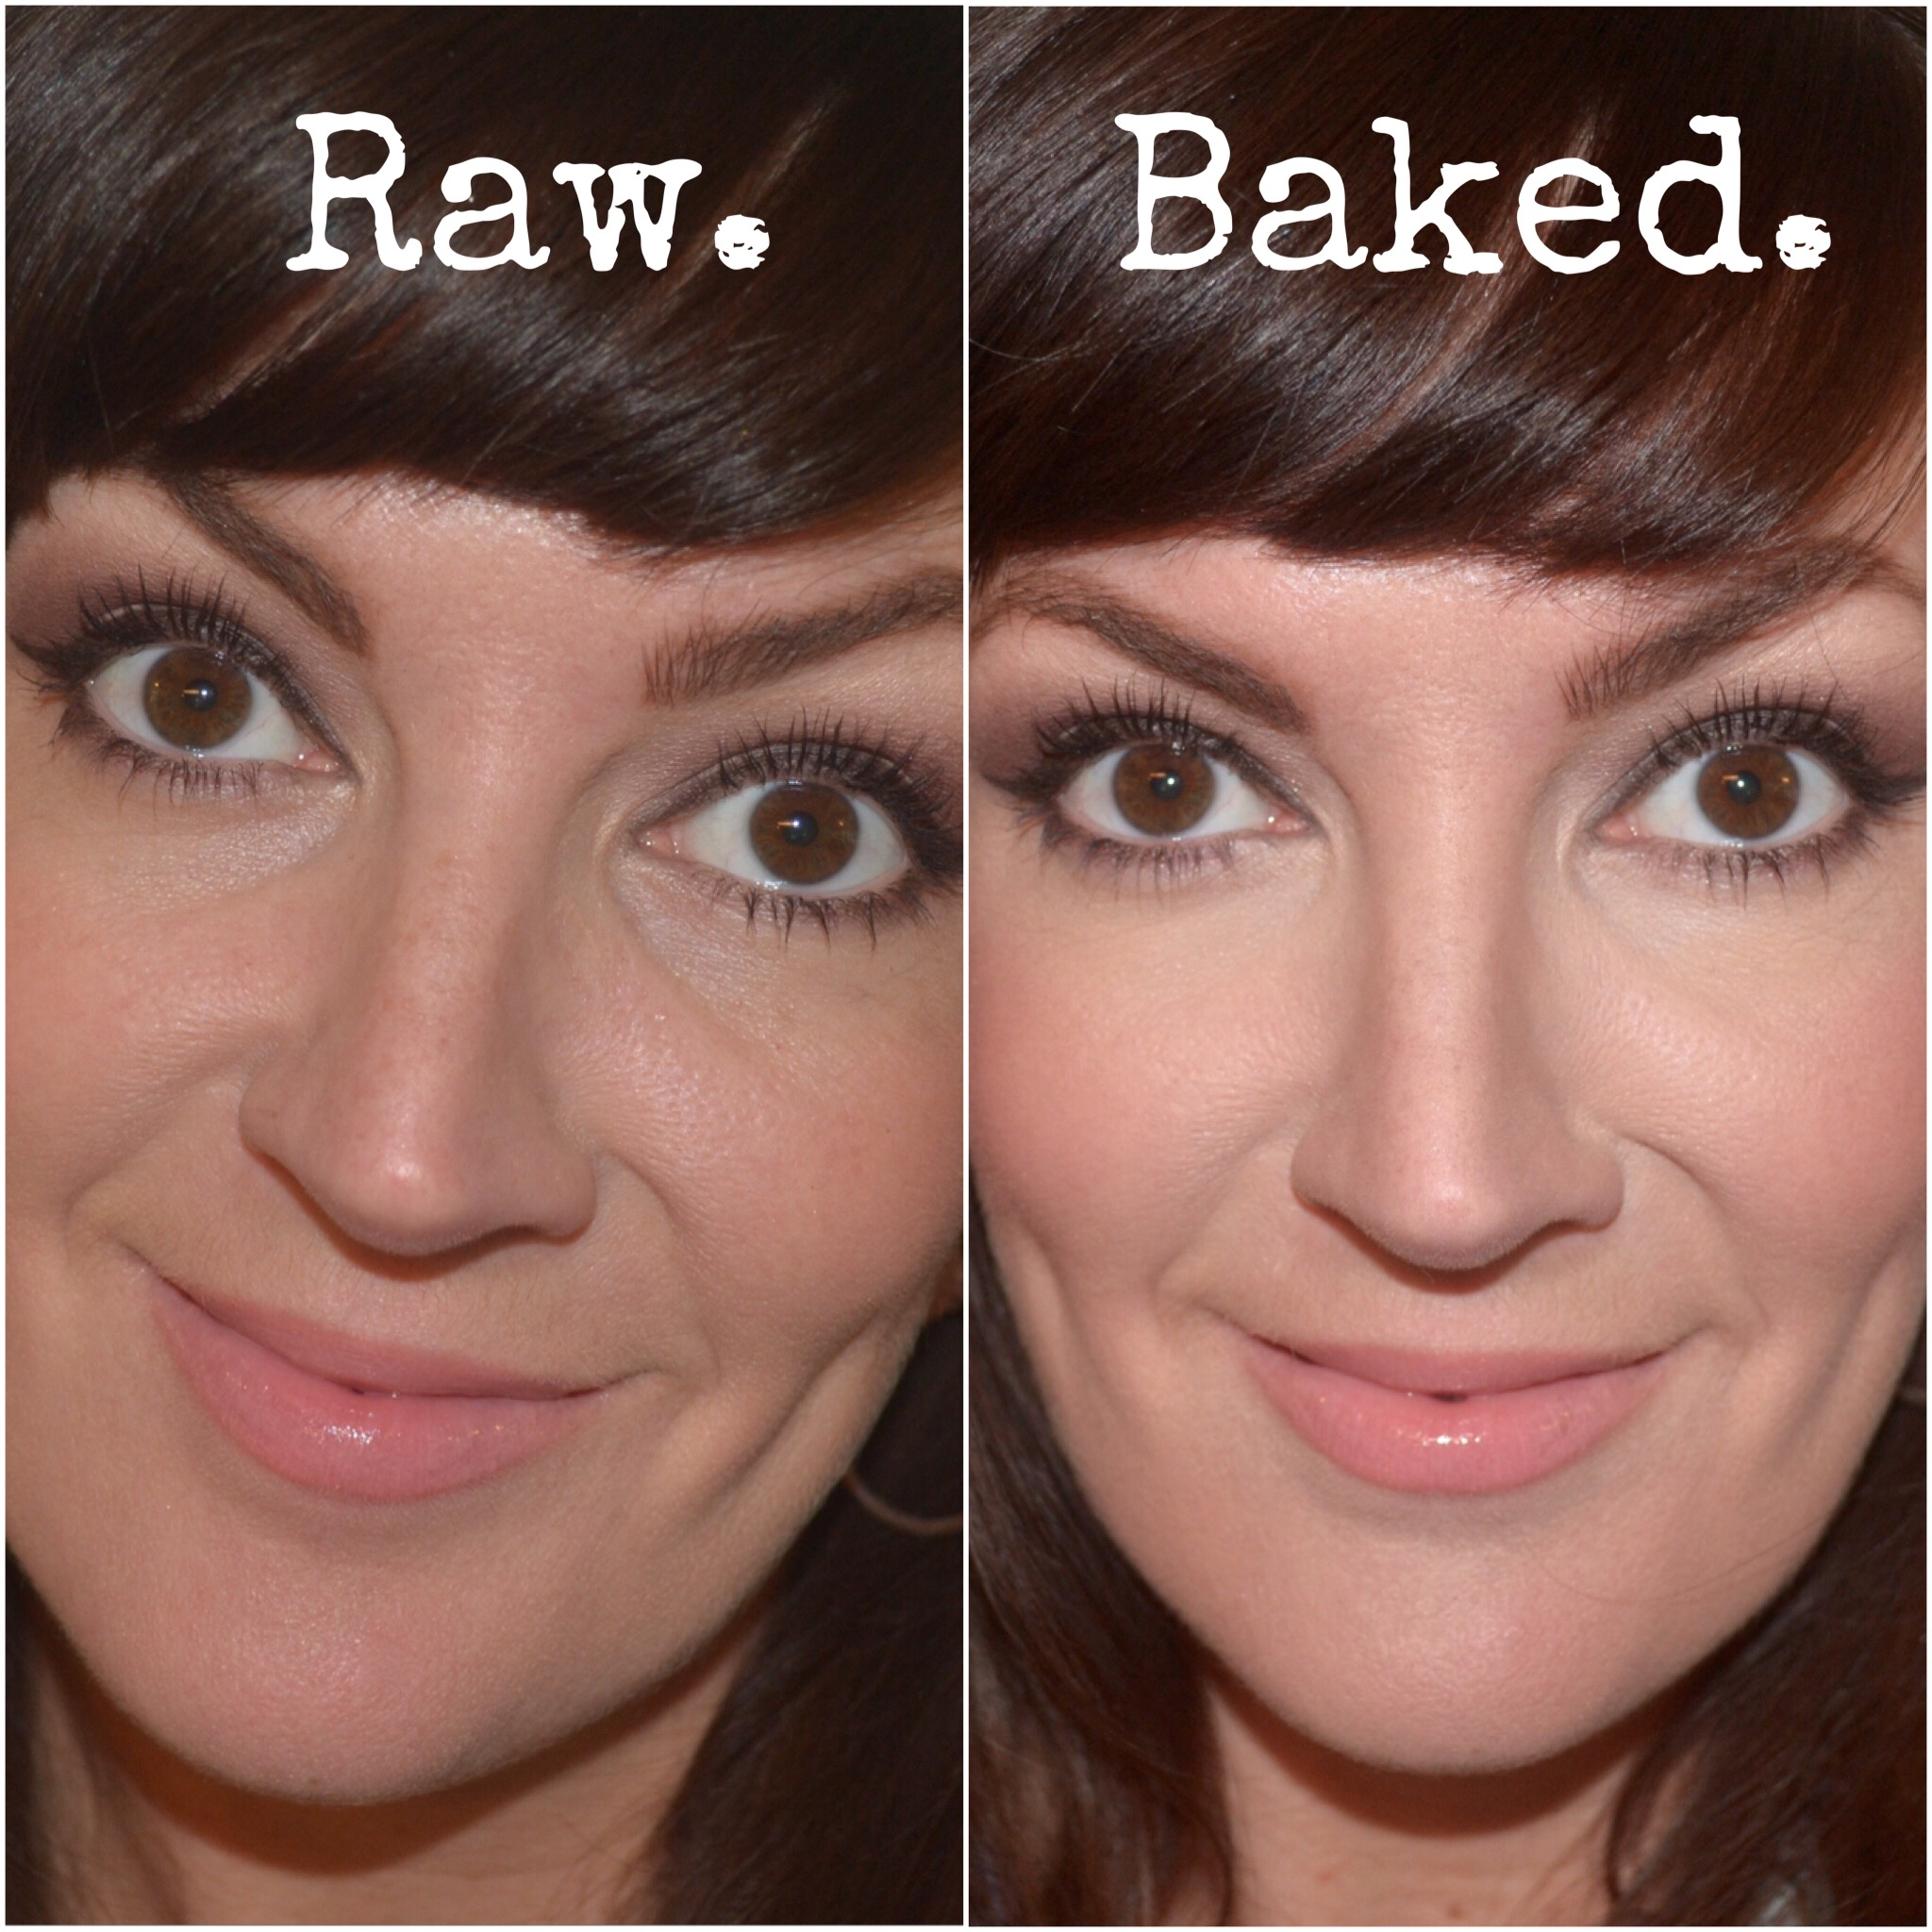 Get Baked : The Hot New Makeup Method